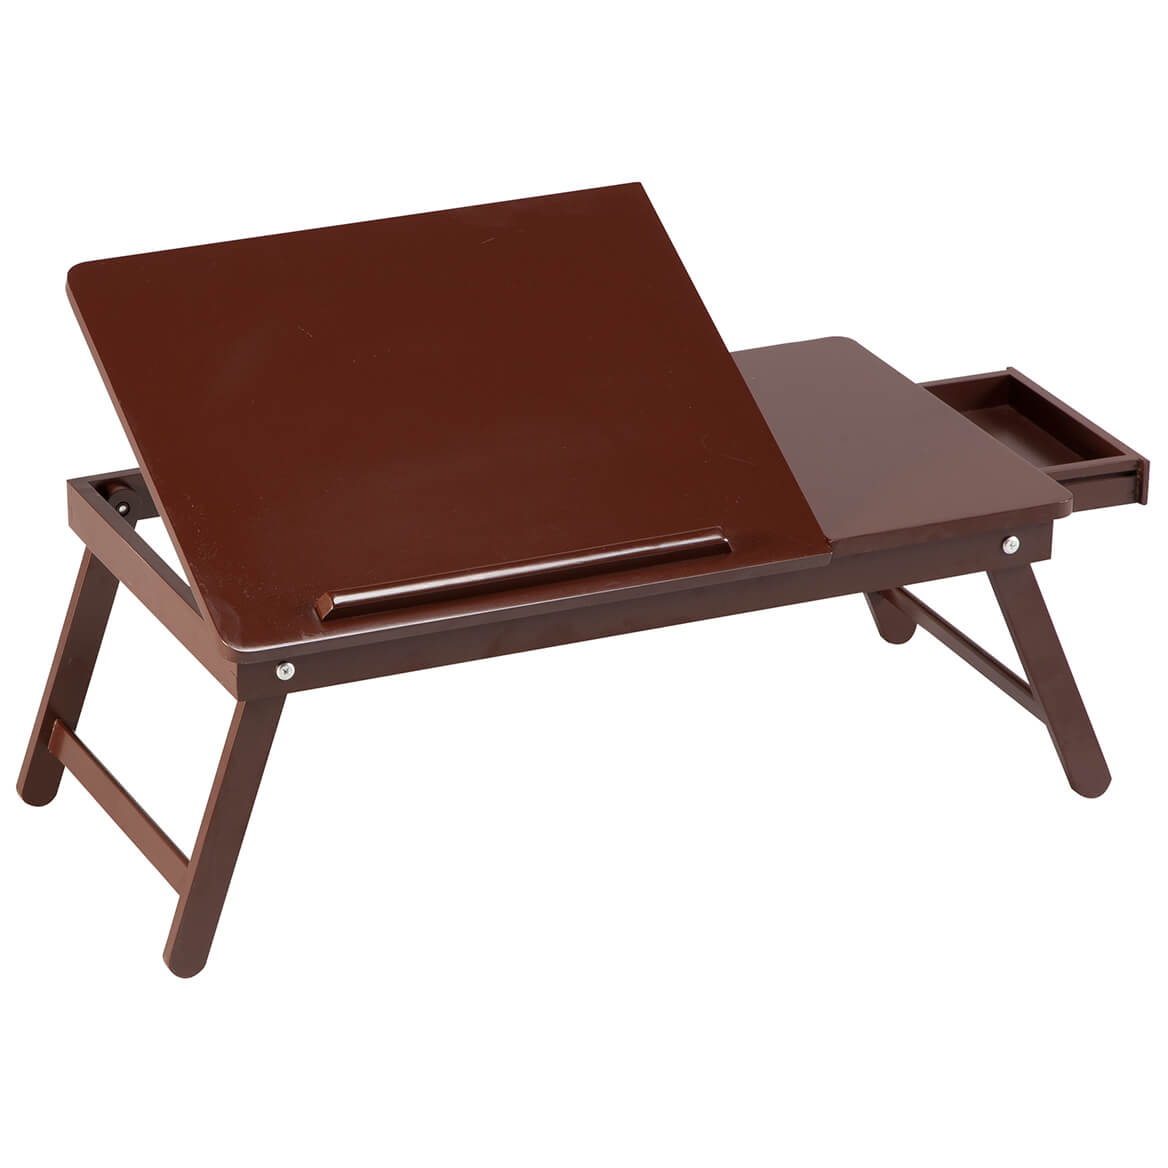 miles kimball oakridge foldable lap desk with storage drawer 23 75 l x 13 375 w x 9 75 h adjustable working surface of 16 5 l x 13 375 w